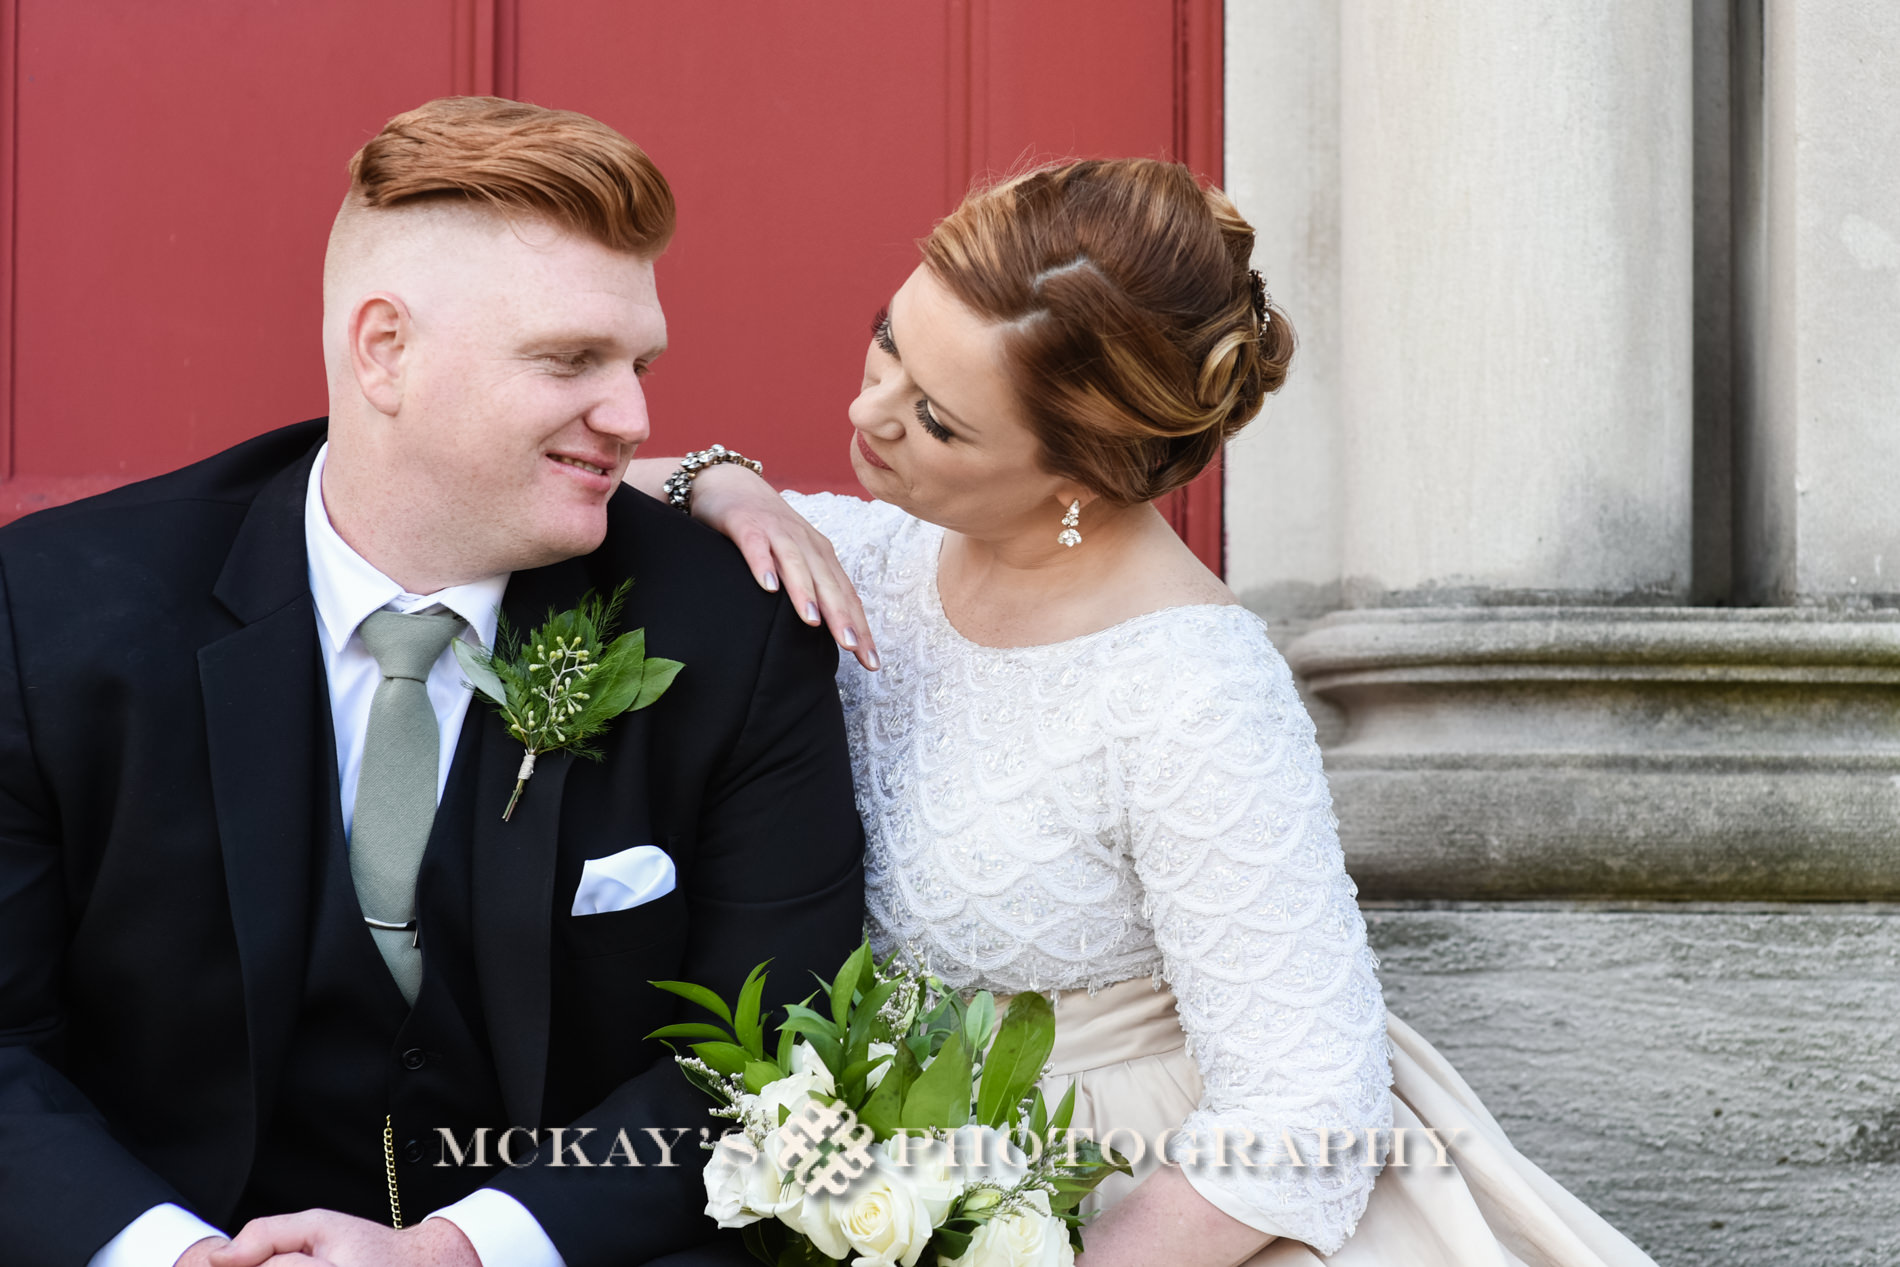 Karpeles Manuscript Library wedding photos in downtown Buffalo by McKay's Photography